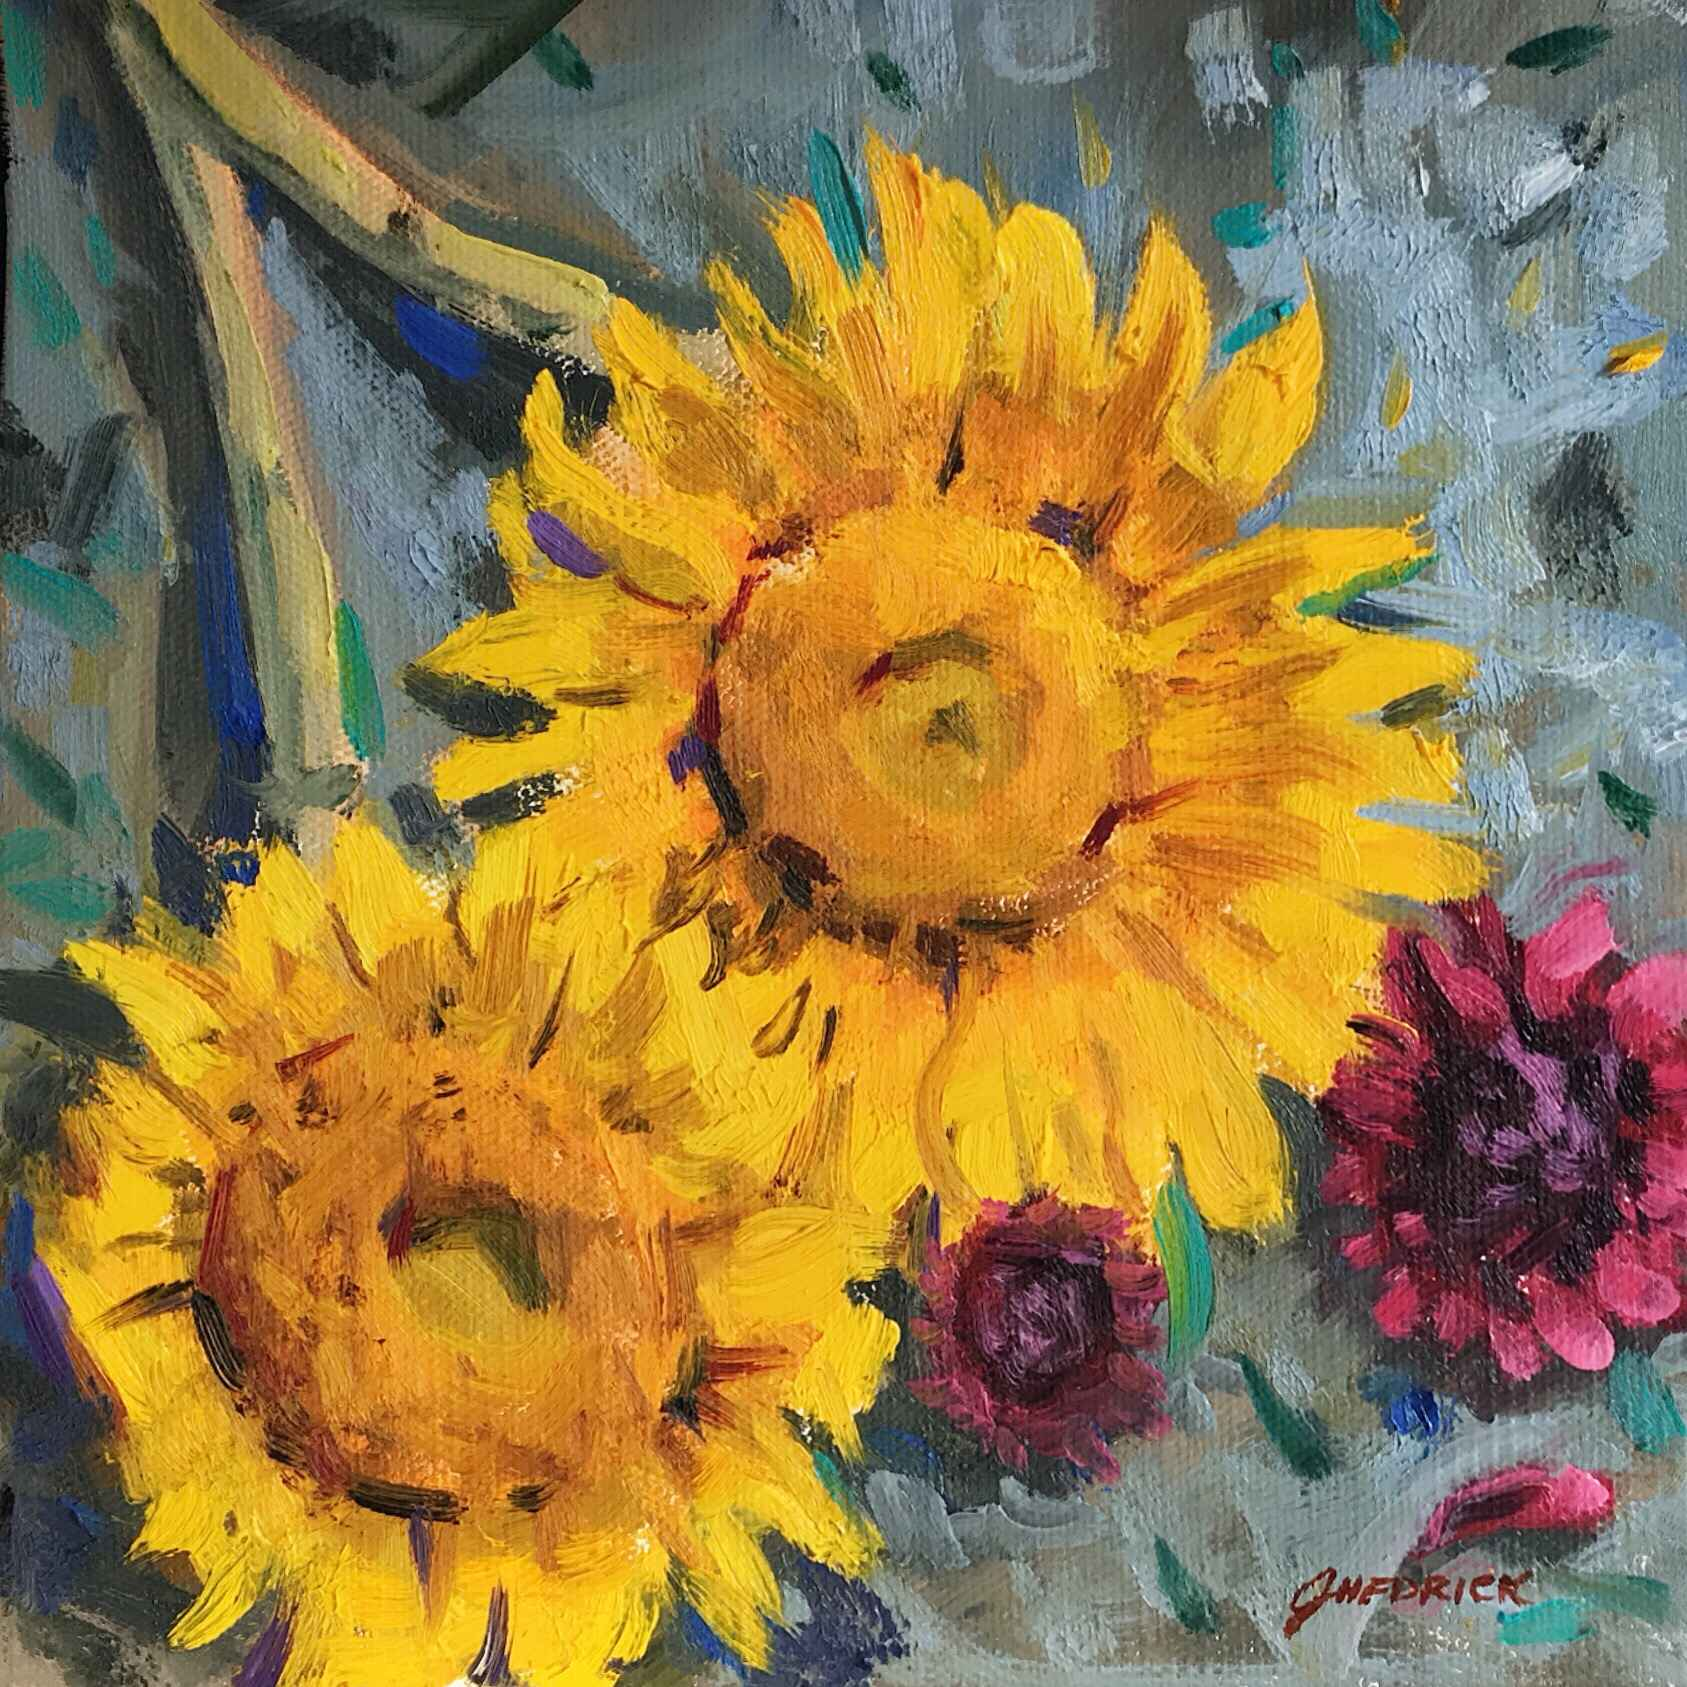 Morning Flowers 2 by  Jessica Hedrick - Masterpiece Online